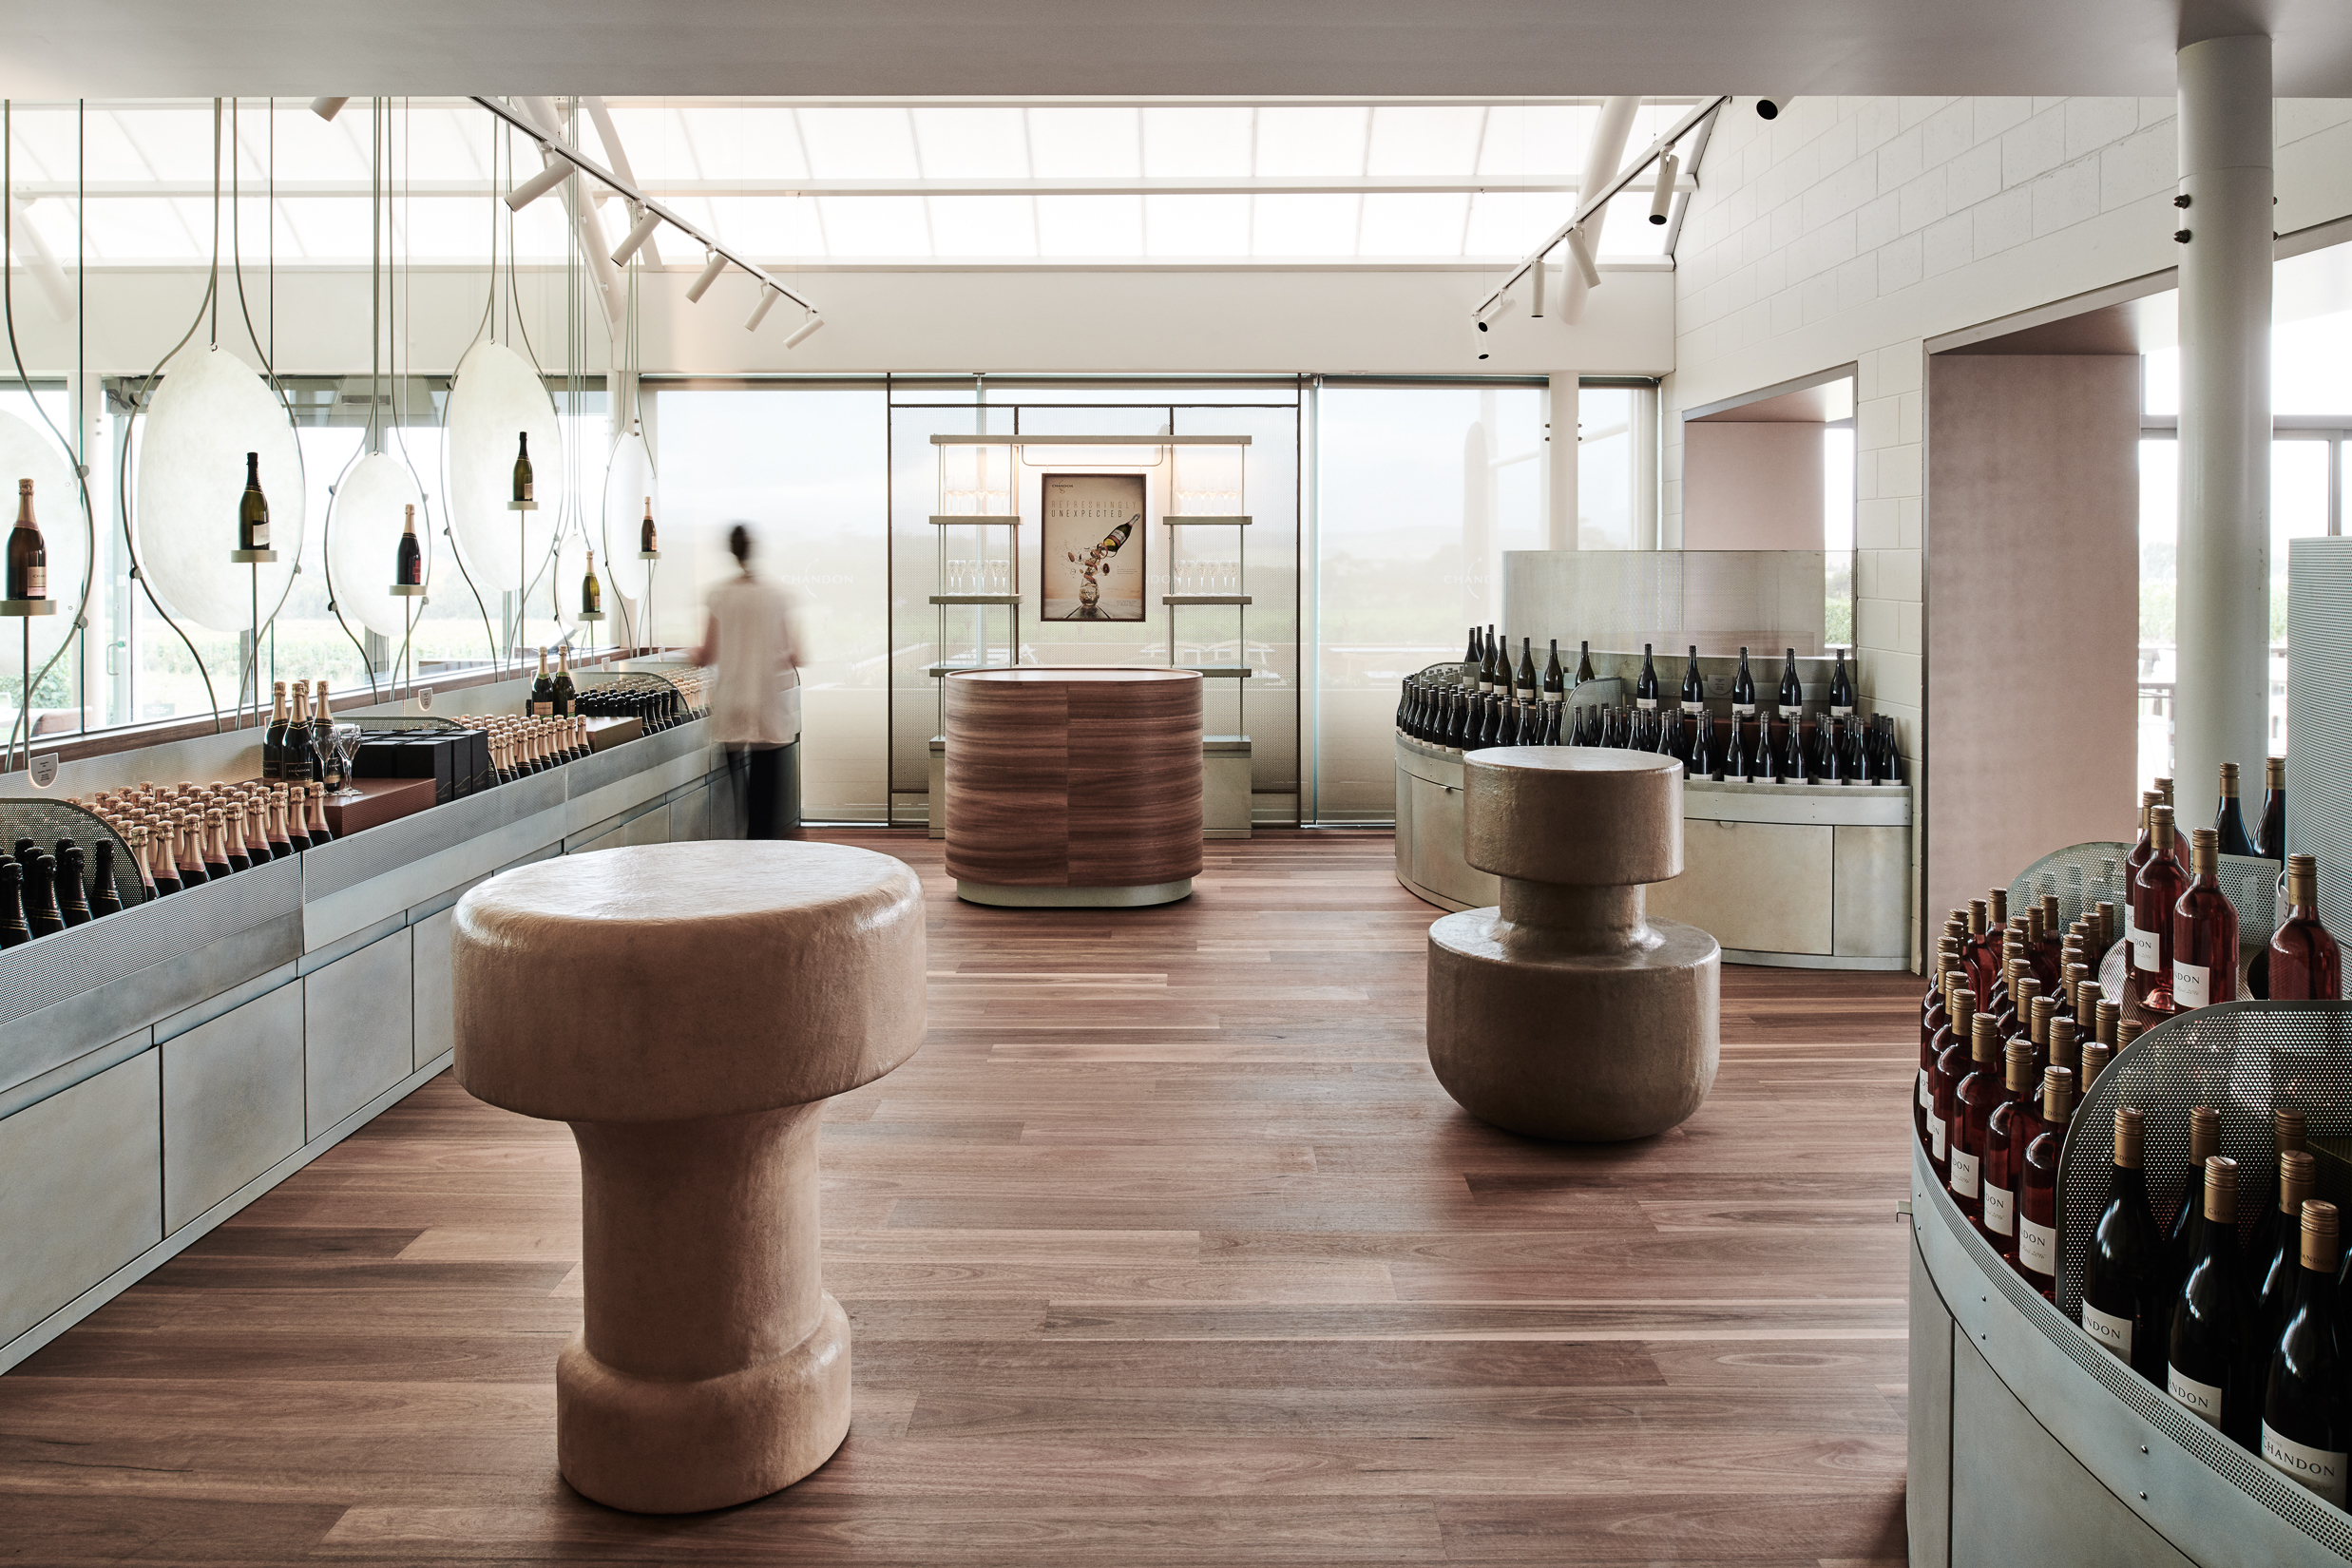 Gallery Of Chandon Australia By Foolscap Studio Local Australian Design And Interiors Yarra Valley, Vic Image 21